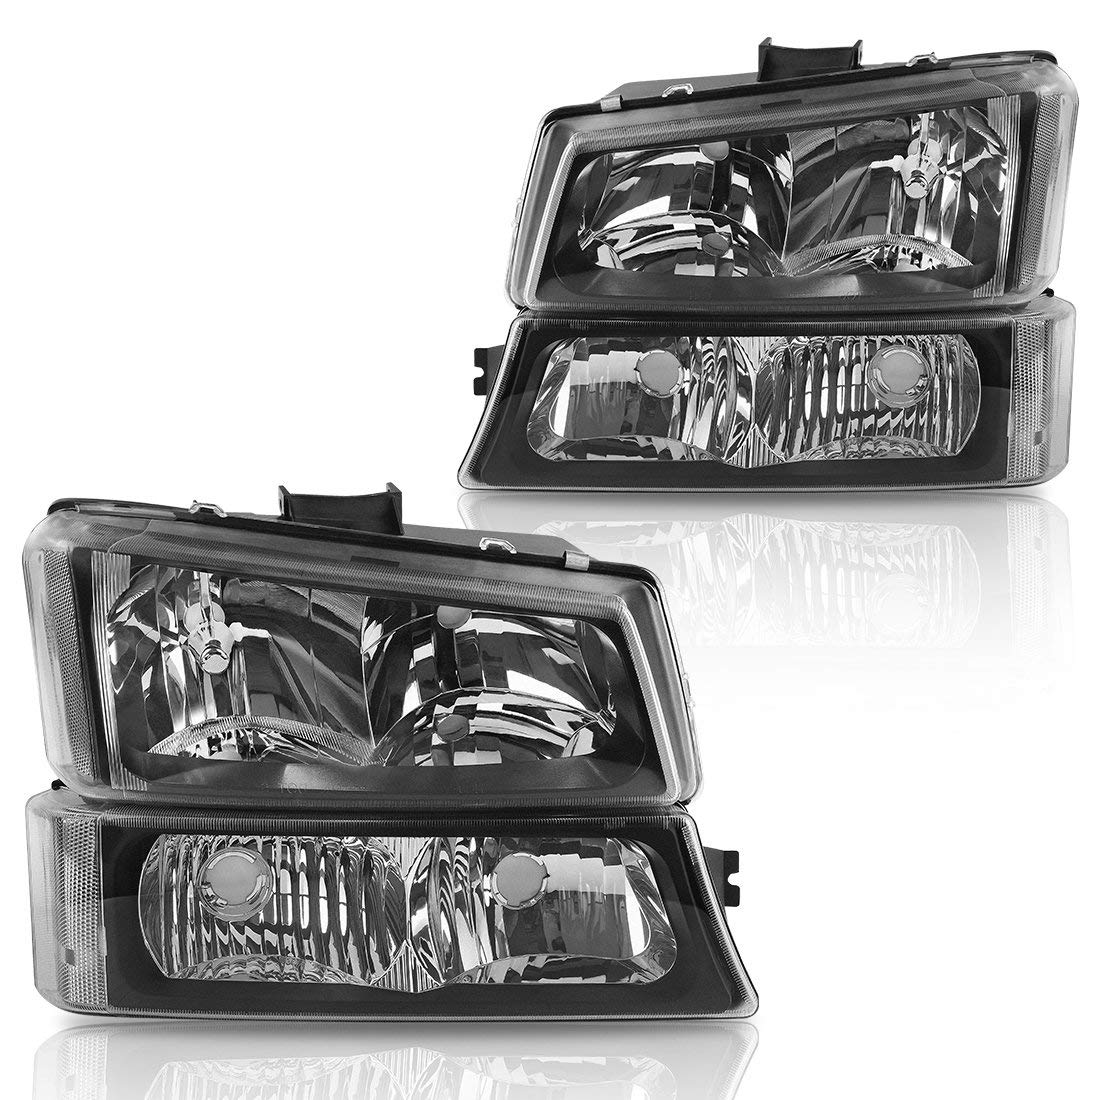 Headlight Assembly kit for 2003 2004 2005 2006 Chevy Avalanche/03-07 Chevrolet Silverado 1500HD/03-06 Chevrolet Silverado 2500HD Headlamp,Black Housing with Tinted Signal Driving Light,2 Year Warranty